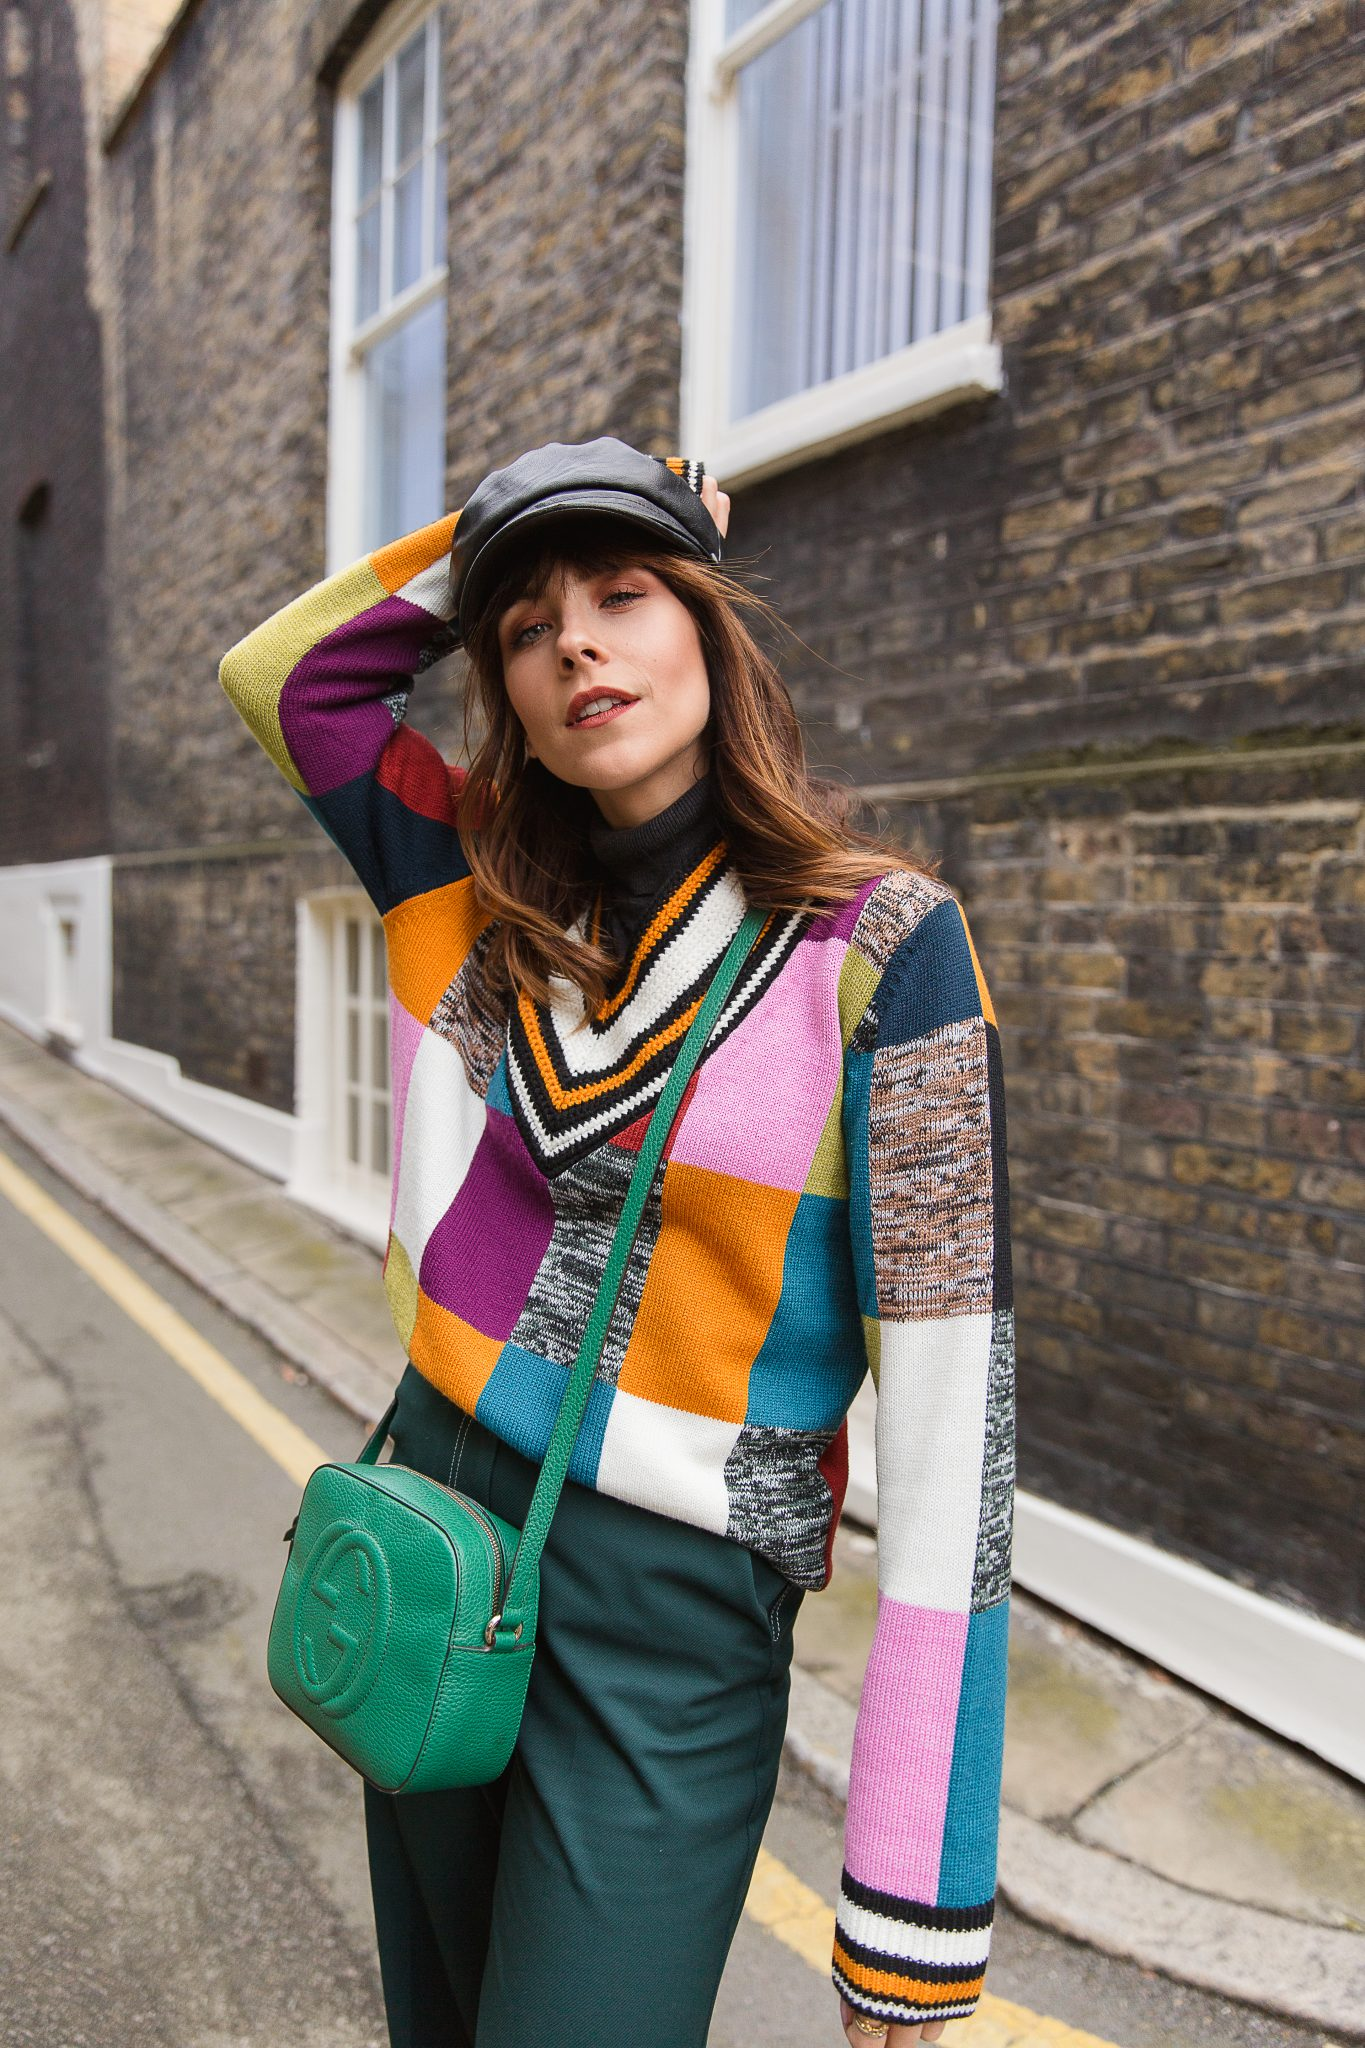 MEGAN ELLABY HOW TO STYLE A BAKER BOY CAP